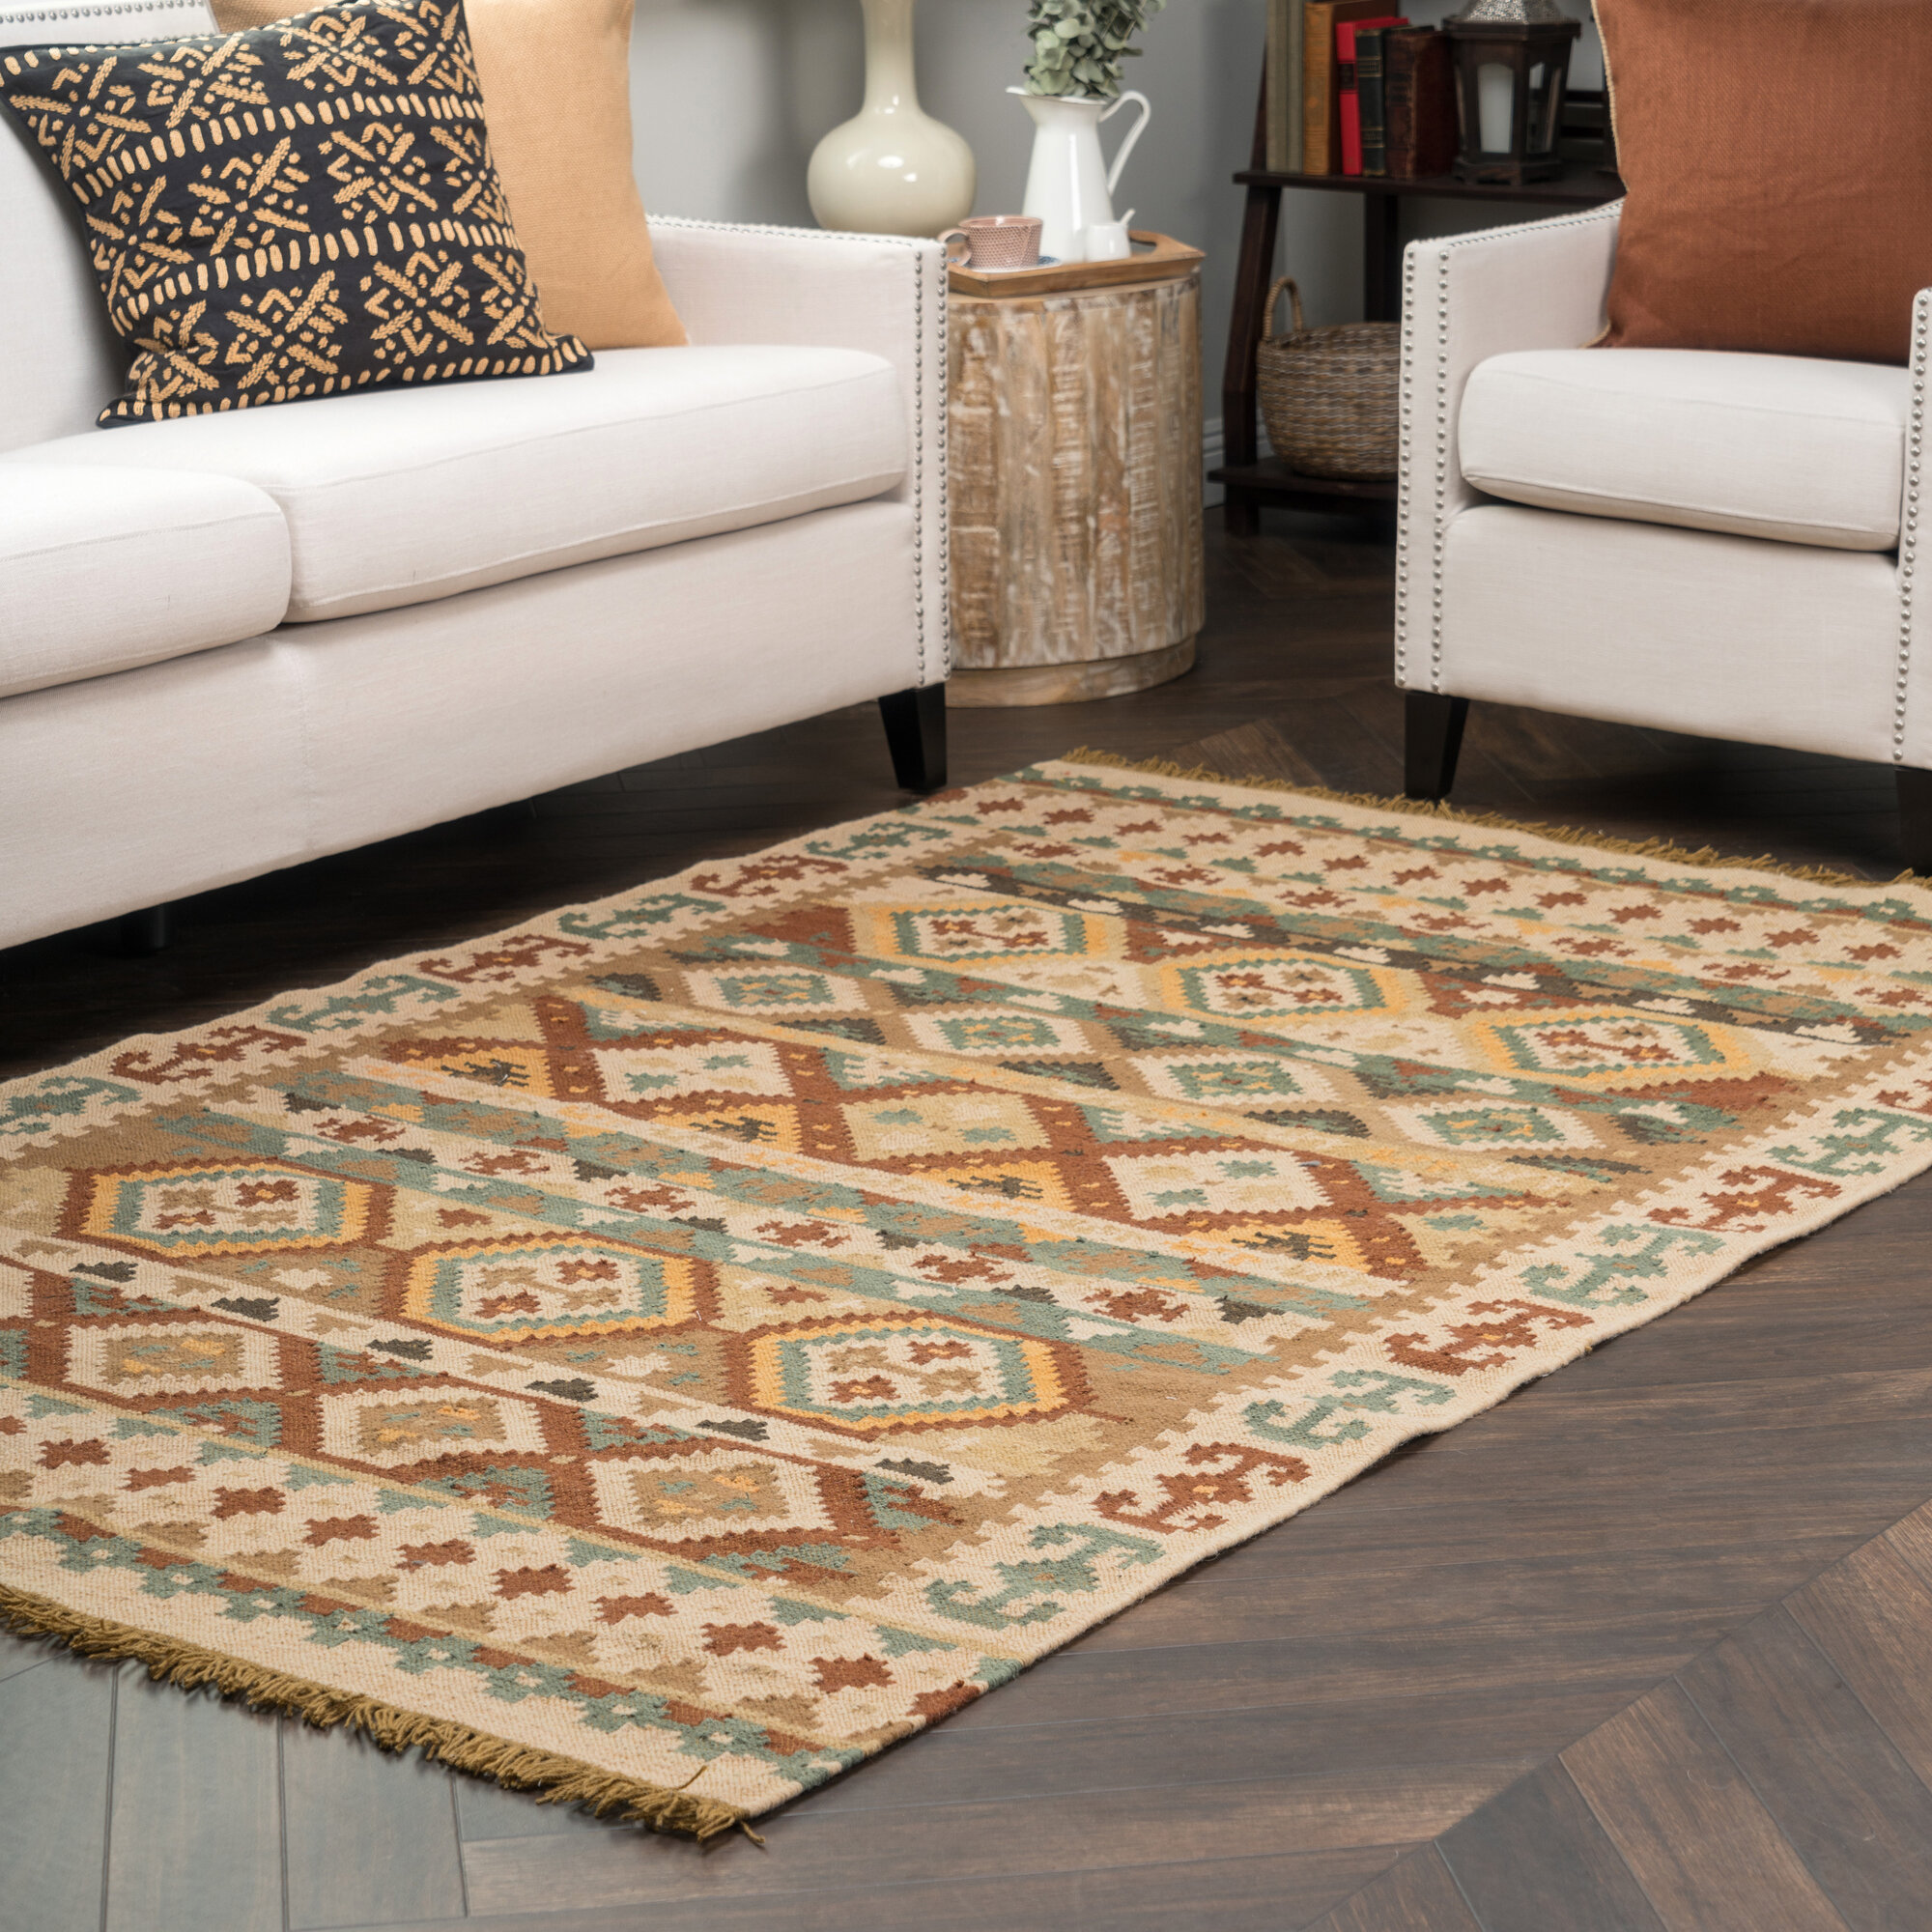 Kosas Home Jayden Indoor/Outdoor Kilim Rug